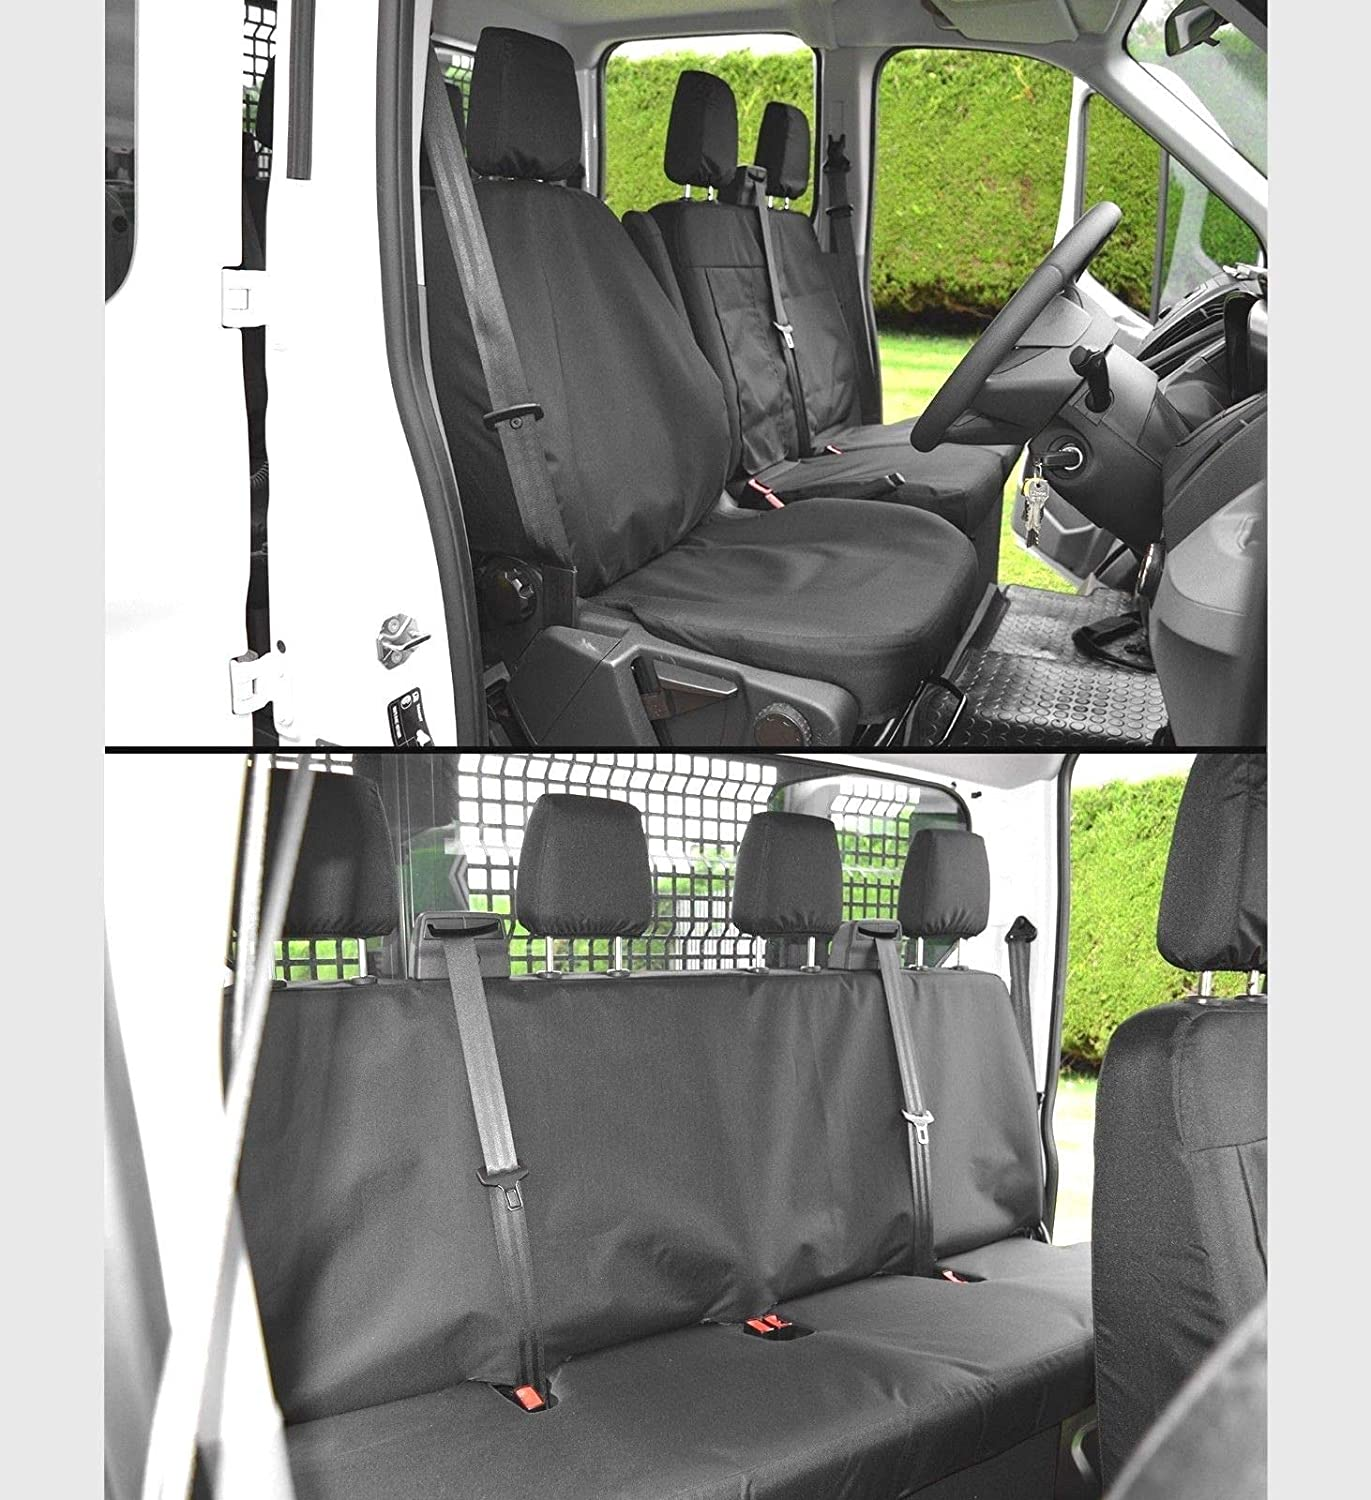 Heavy Duty Tailored Seat Covers To Fit a Ford Transit Tipper Crew Cab 7 Seater CAR SEAT COVERS DIRECT